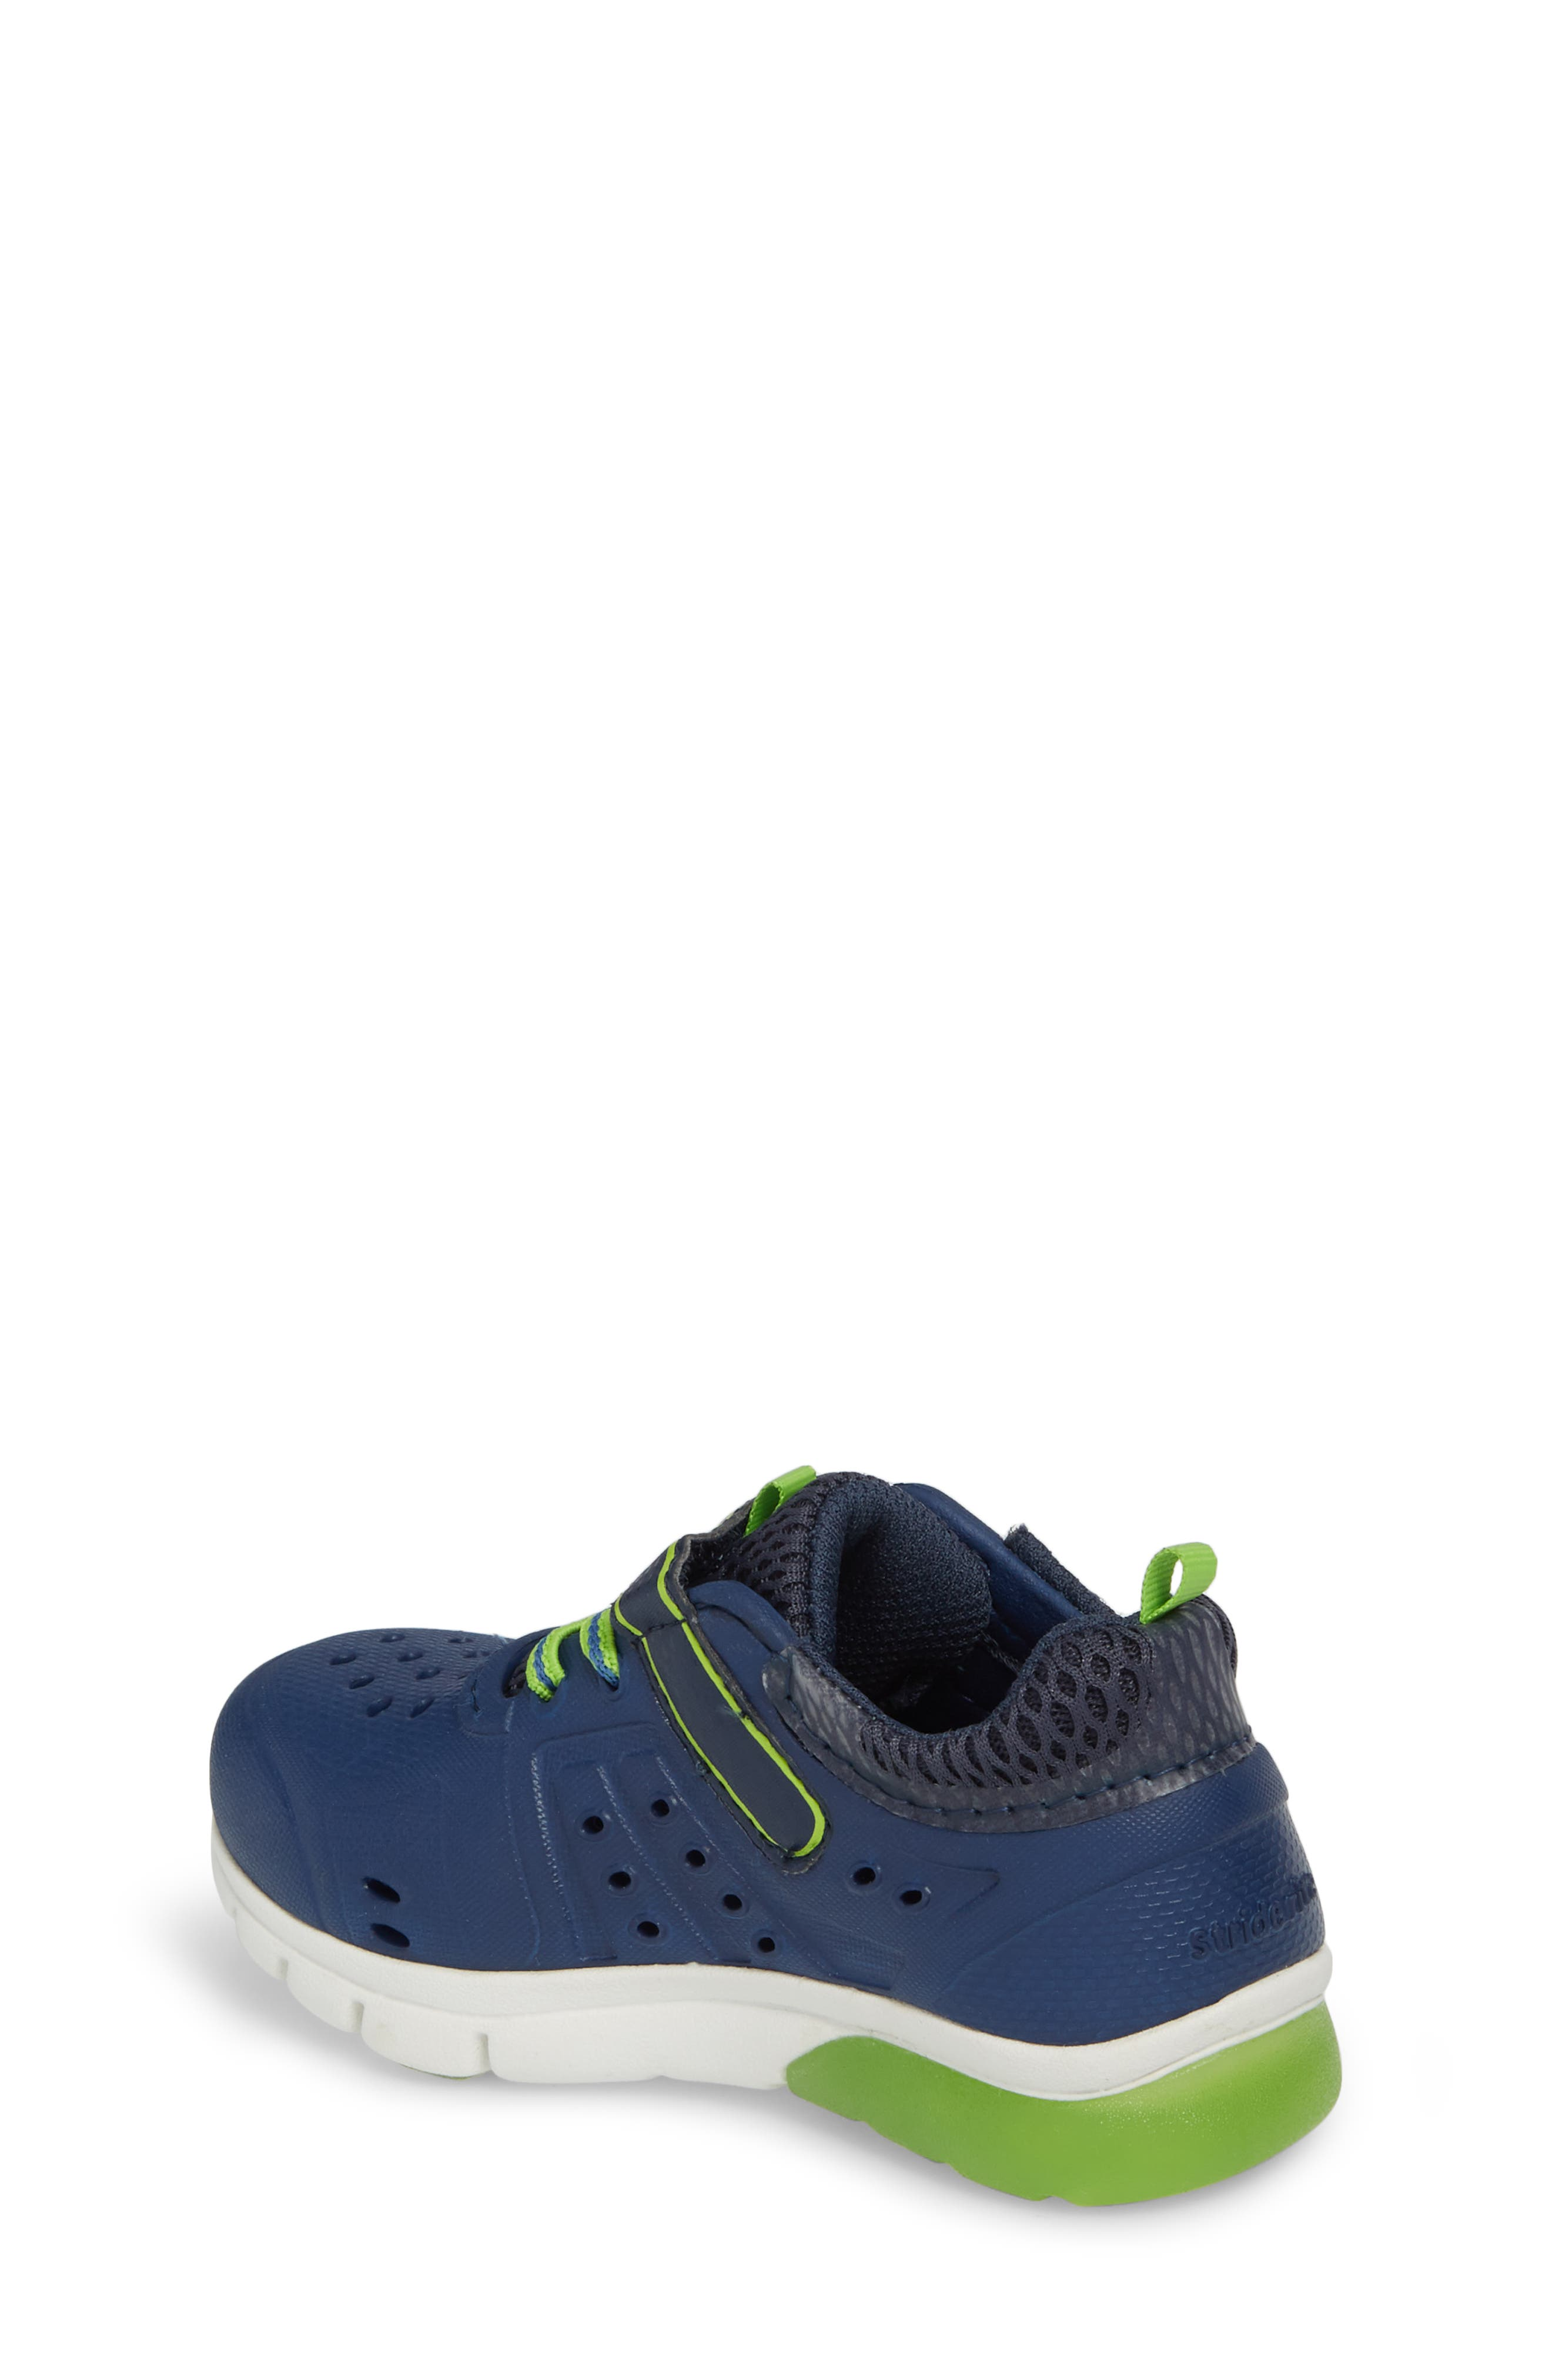 Made2Play<sup>®</sup> Phibian Light-Up Sneaker,                             Alternate thumbnail 2, color,                             NAVY